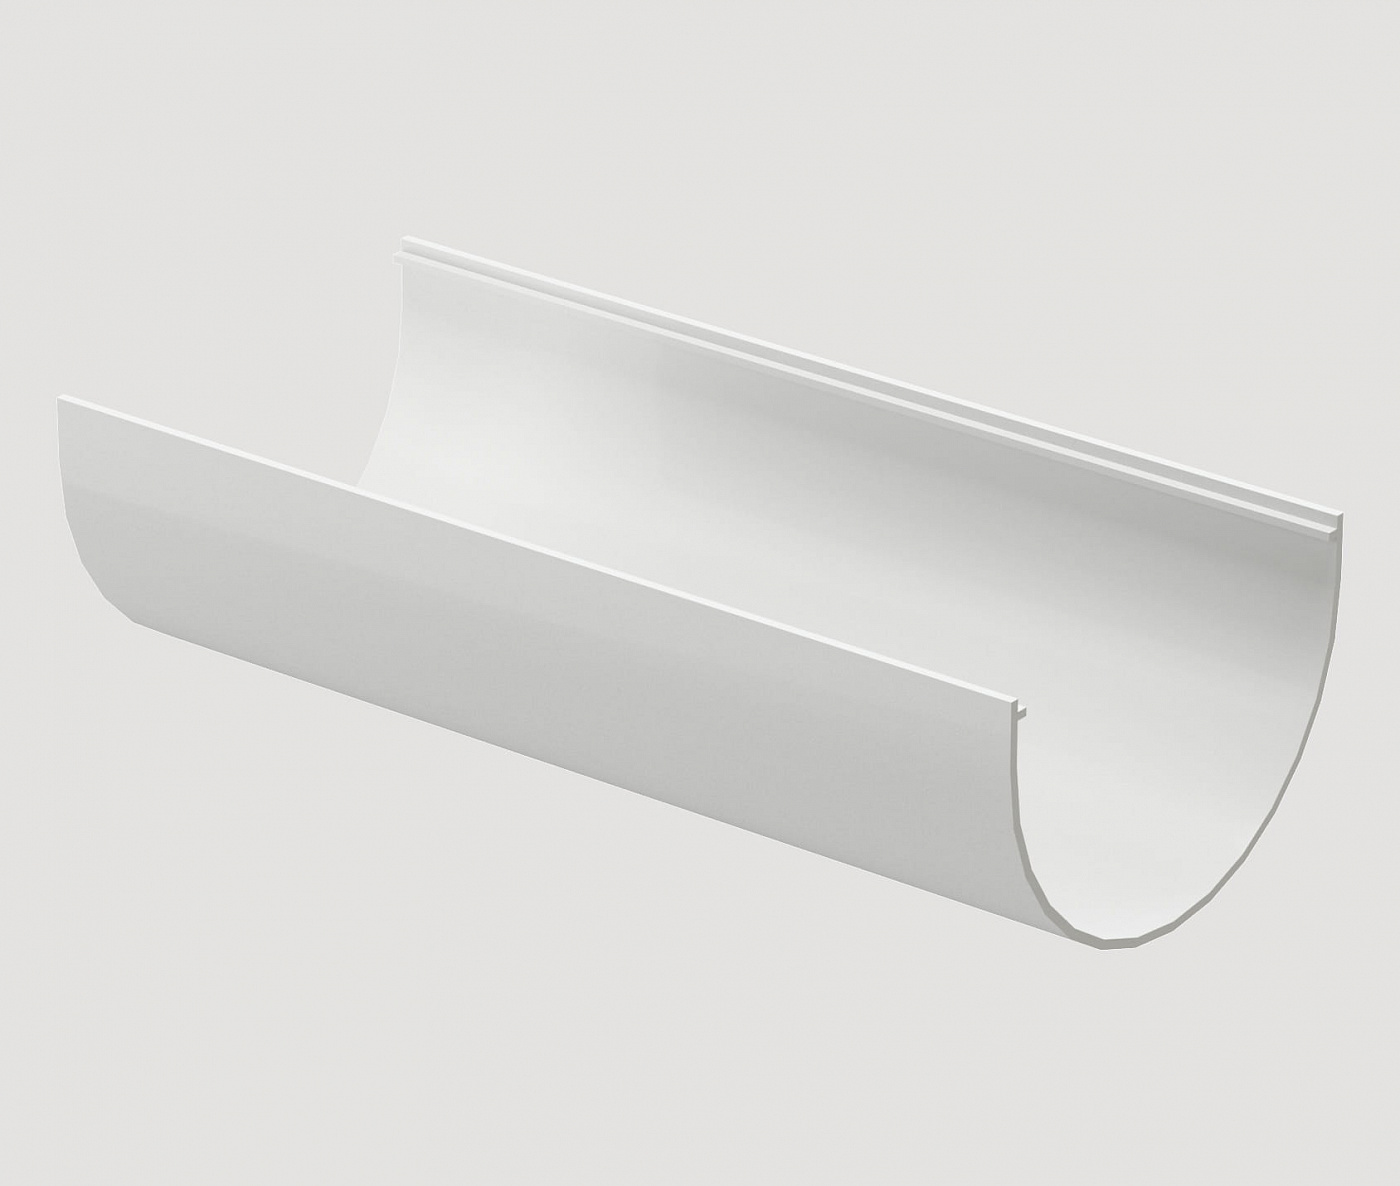 Водостоки - STANDARD SERIES White RAL 9003 - Elements of the drainage system - Gutter 3m